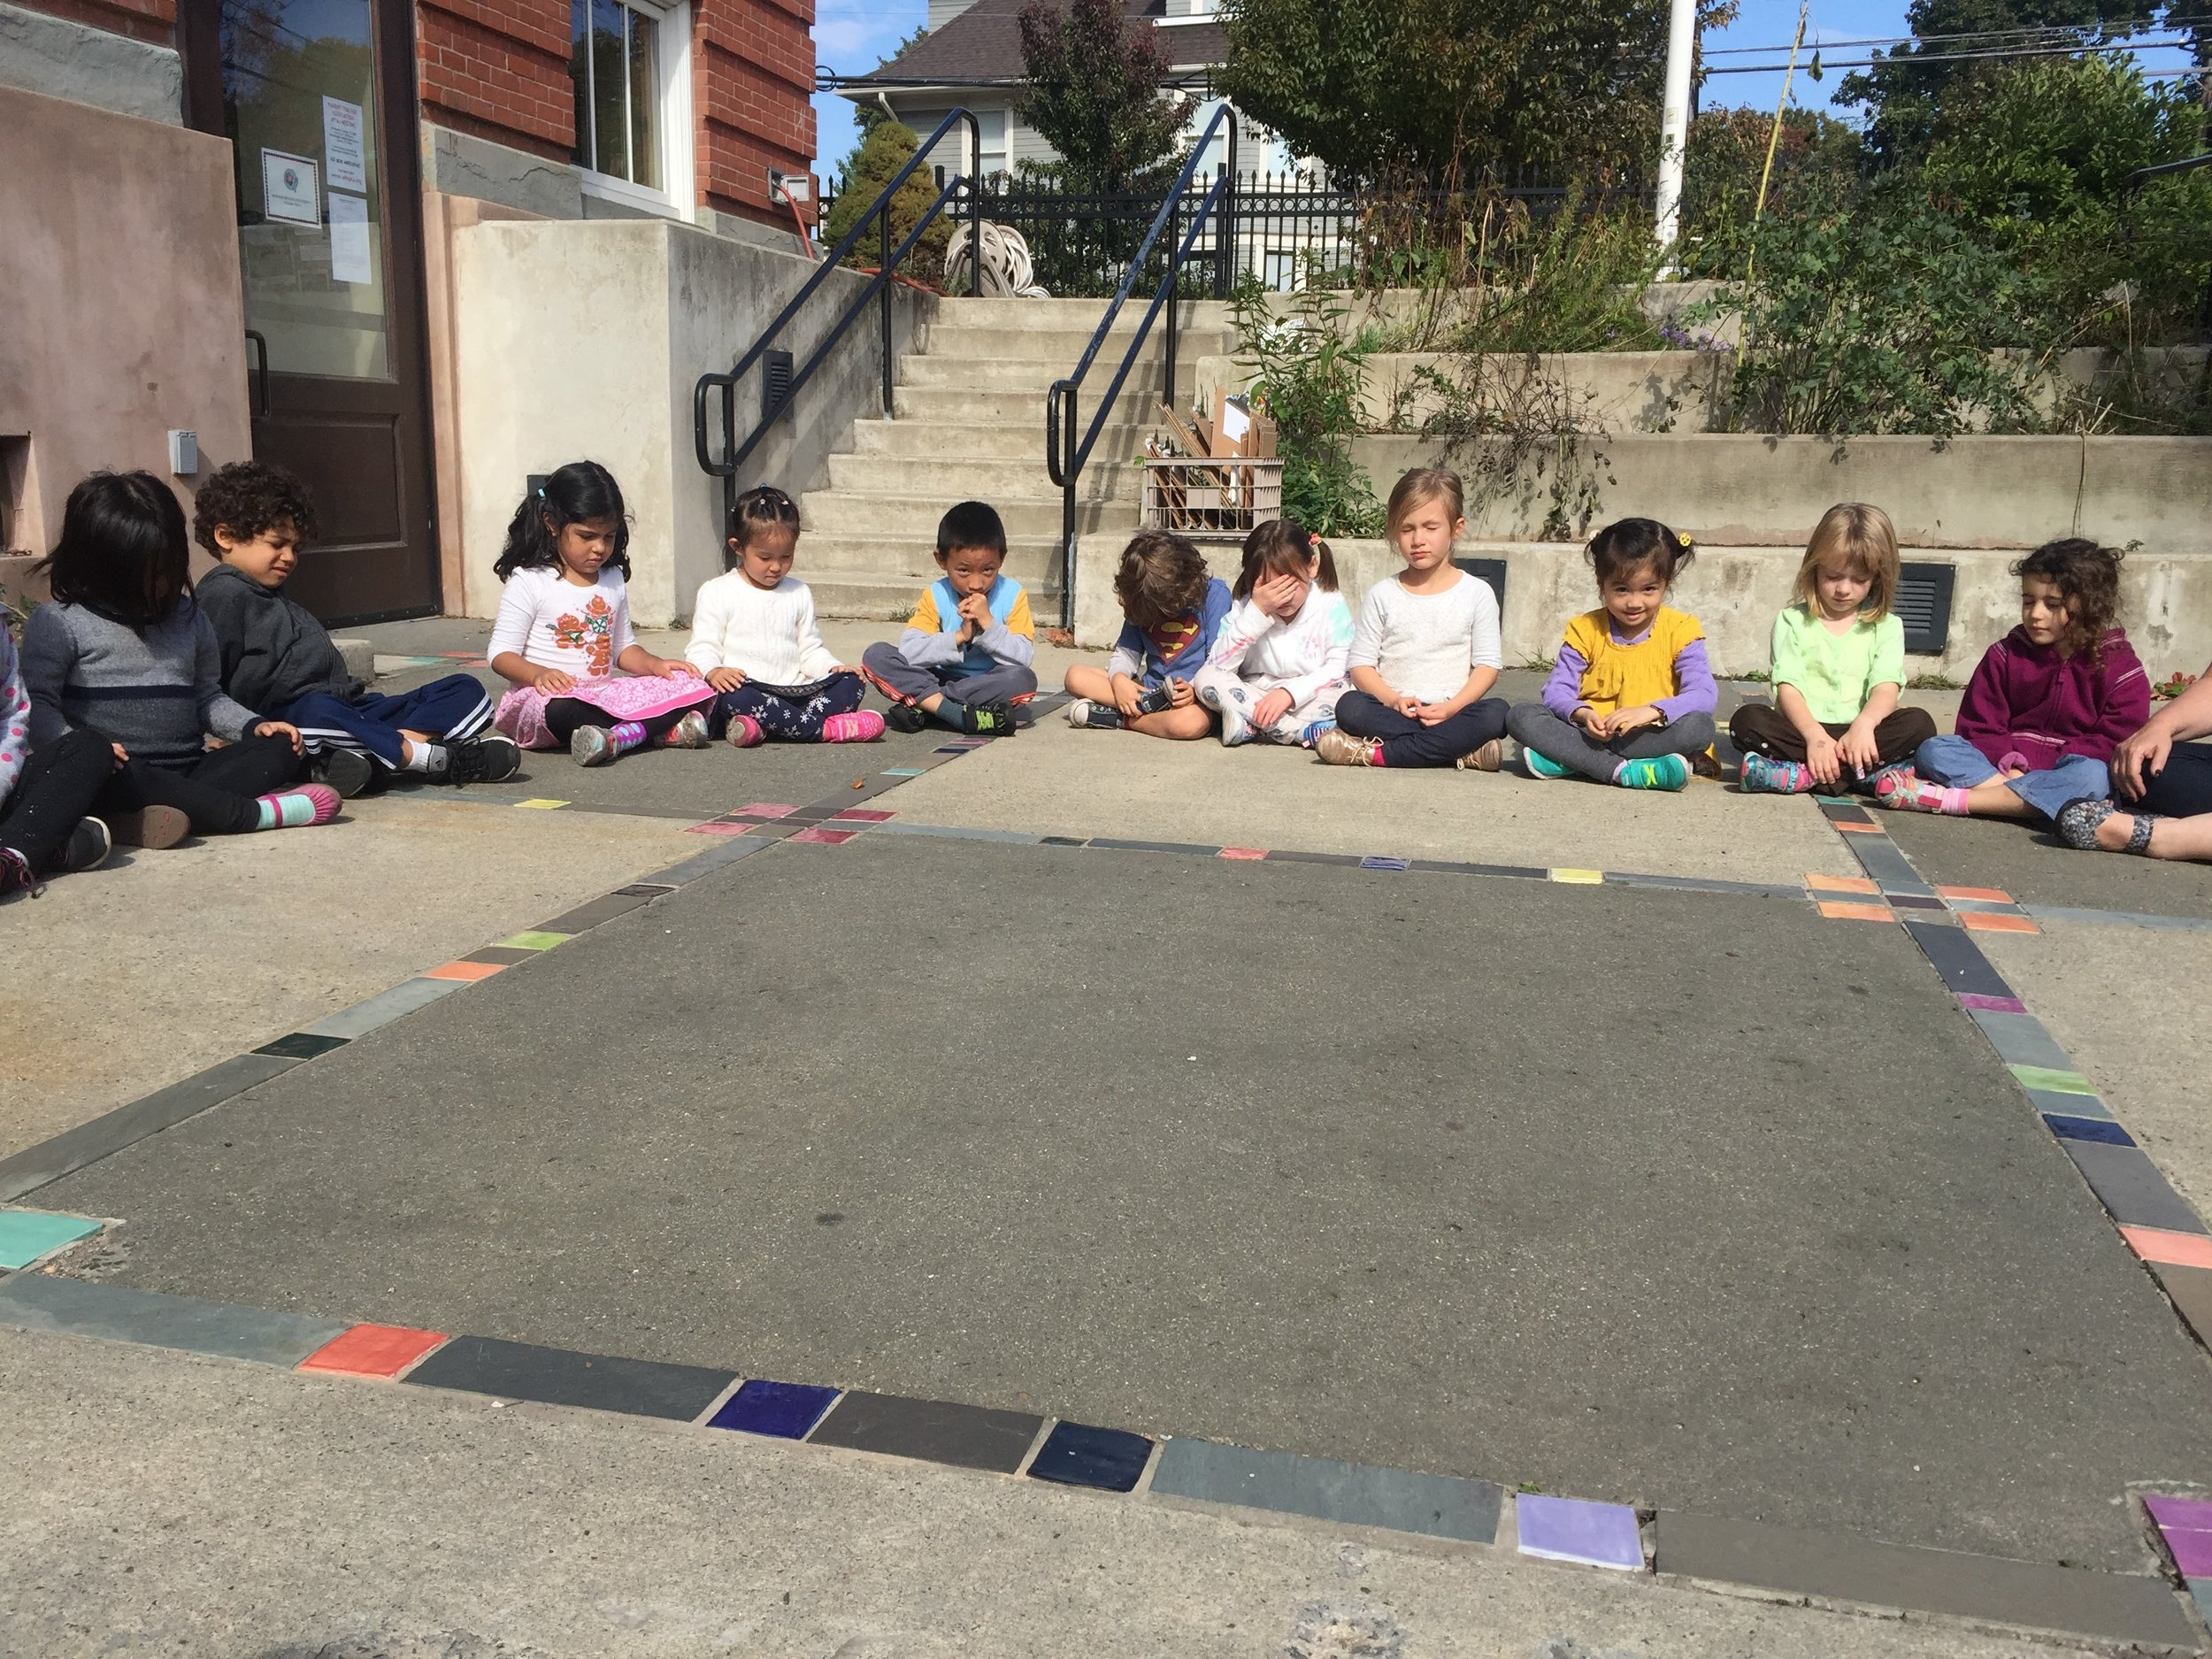 Mindful Listening in the courtyard